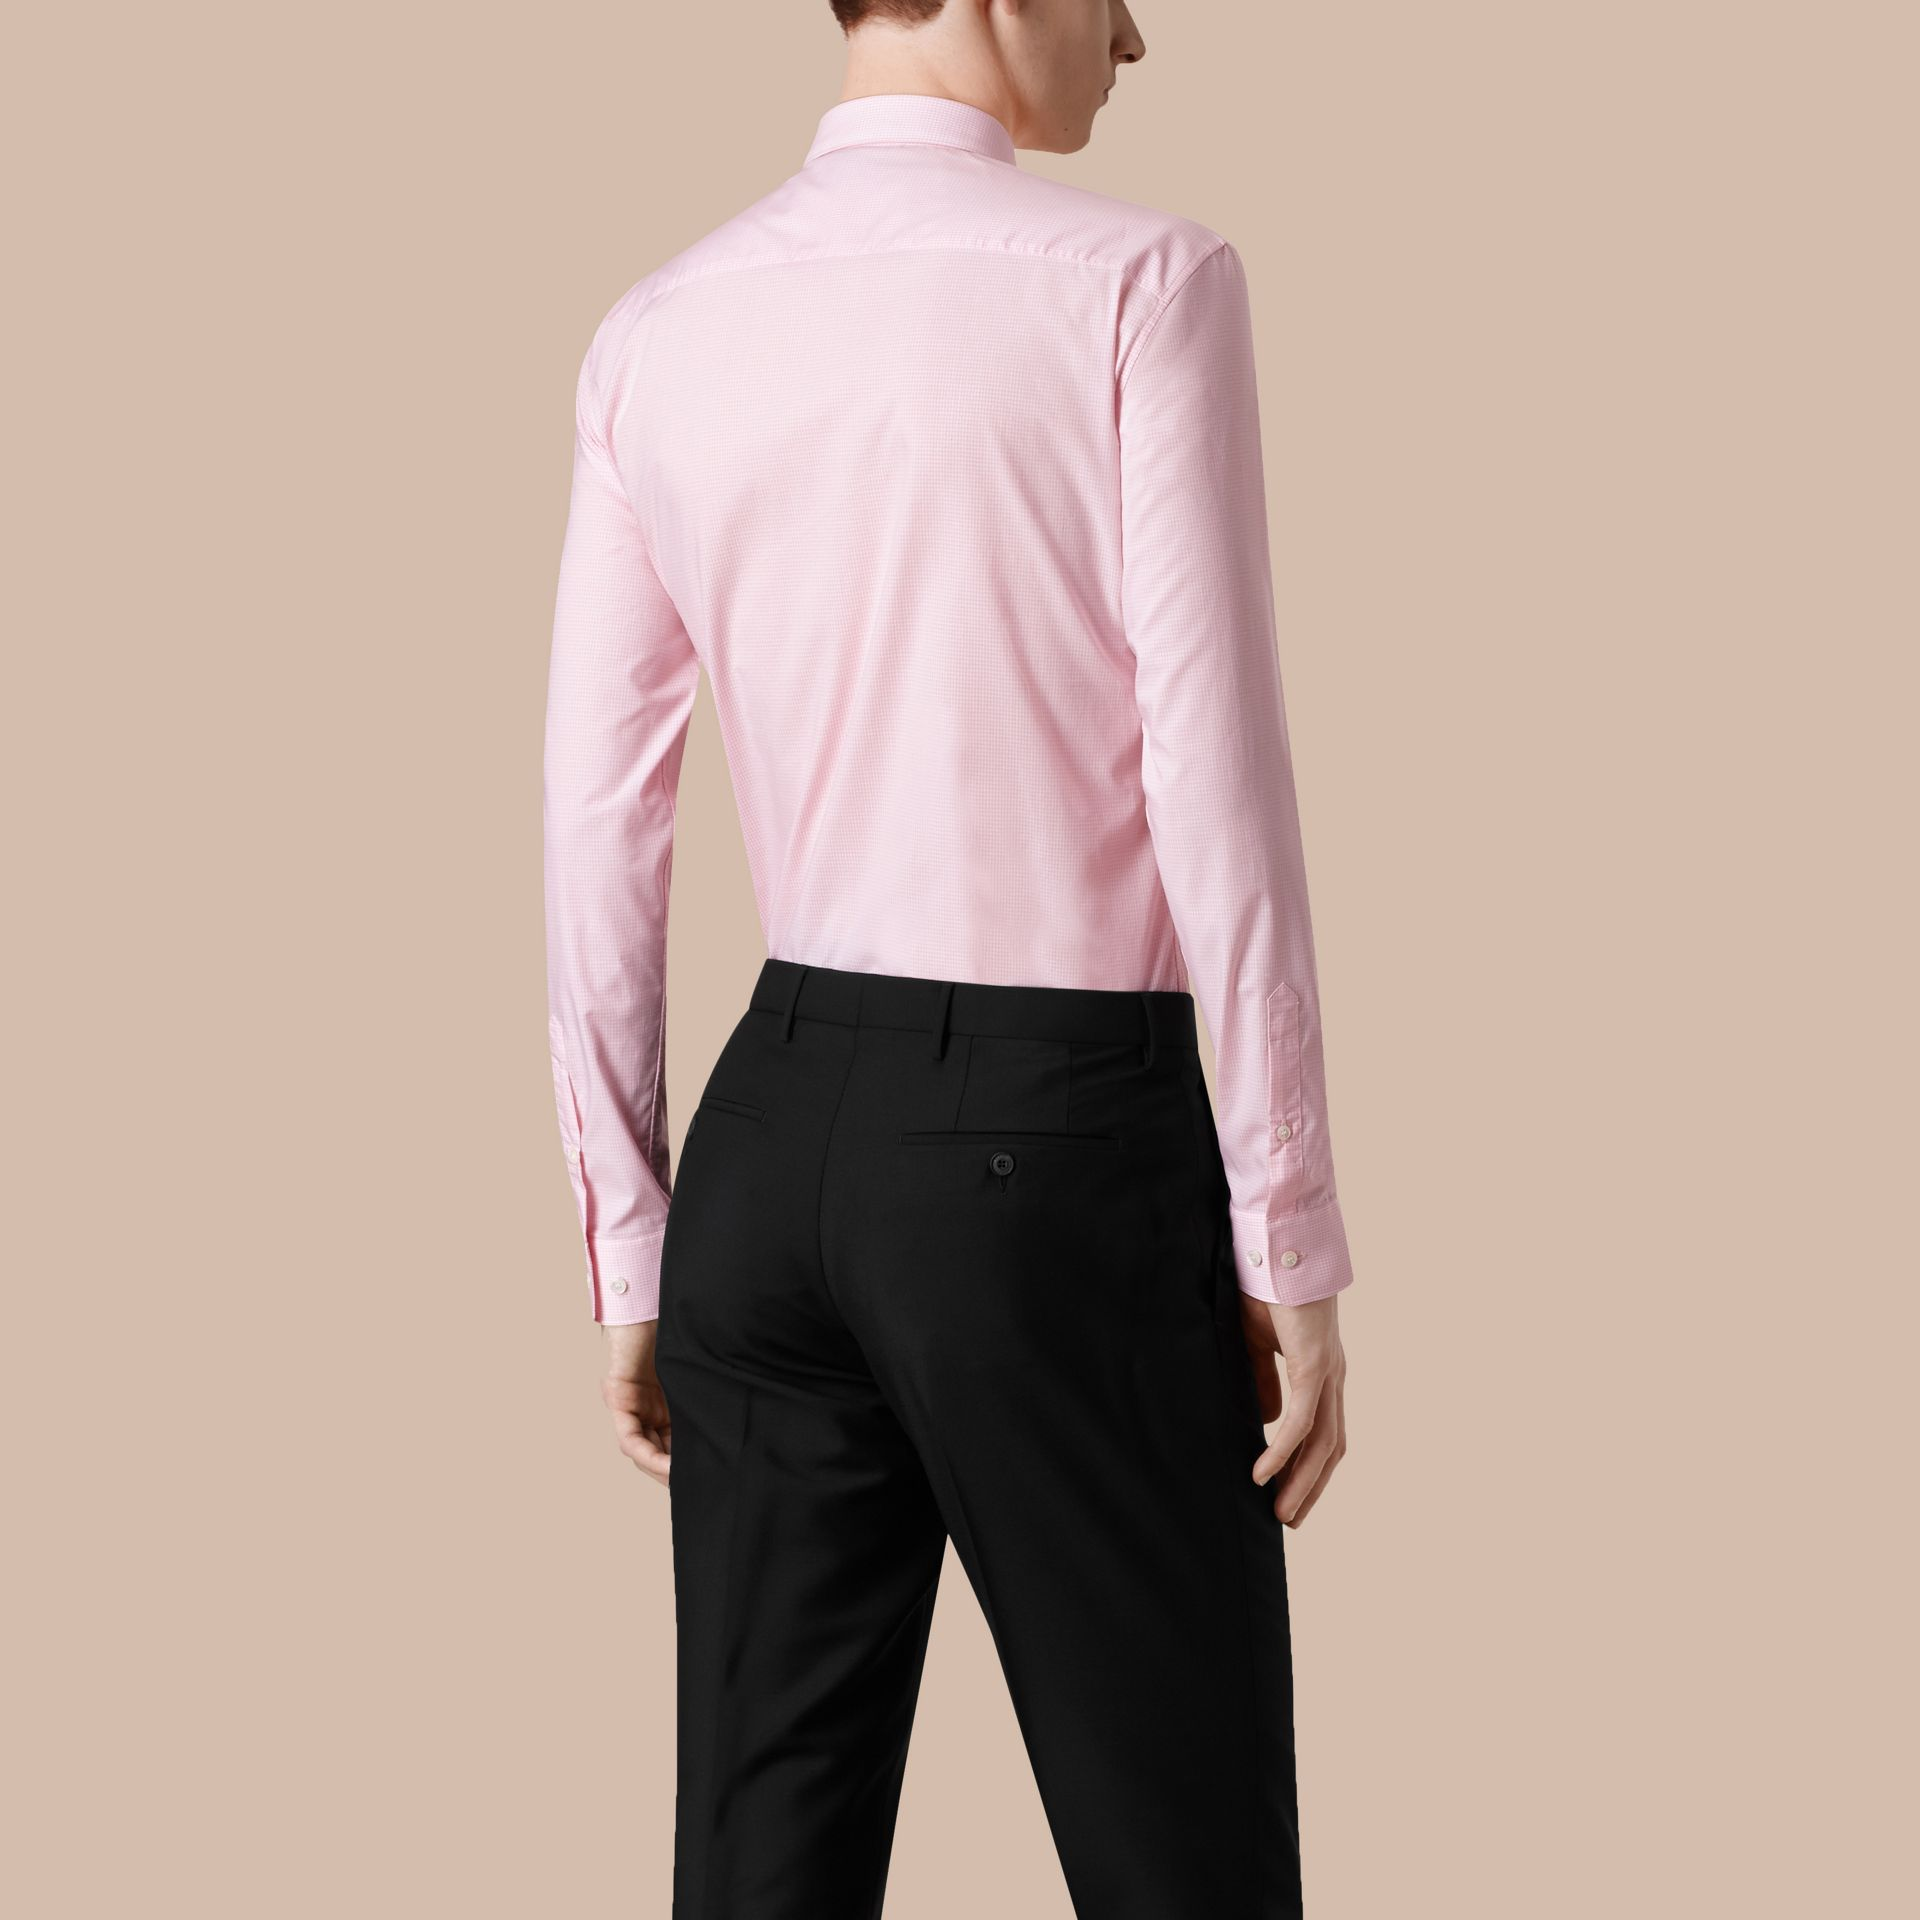 City pink Modern Fit Gingham Cotton Poplin Shirt City Pink - gallery image 3